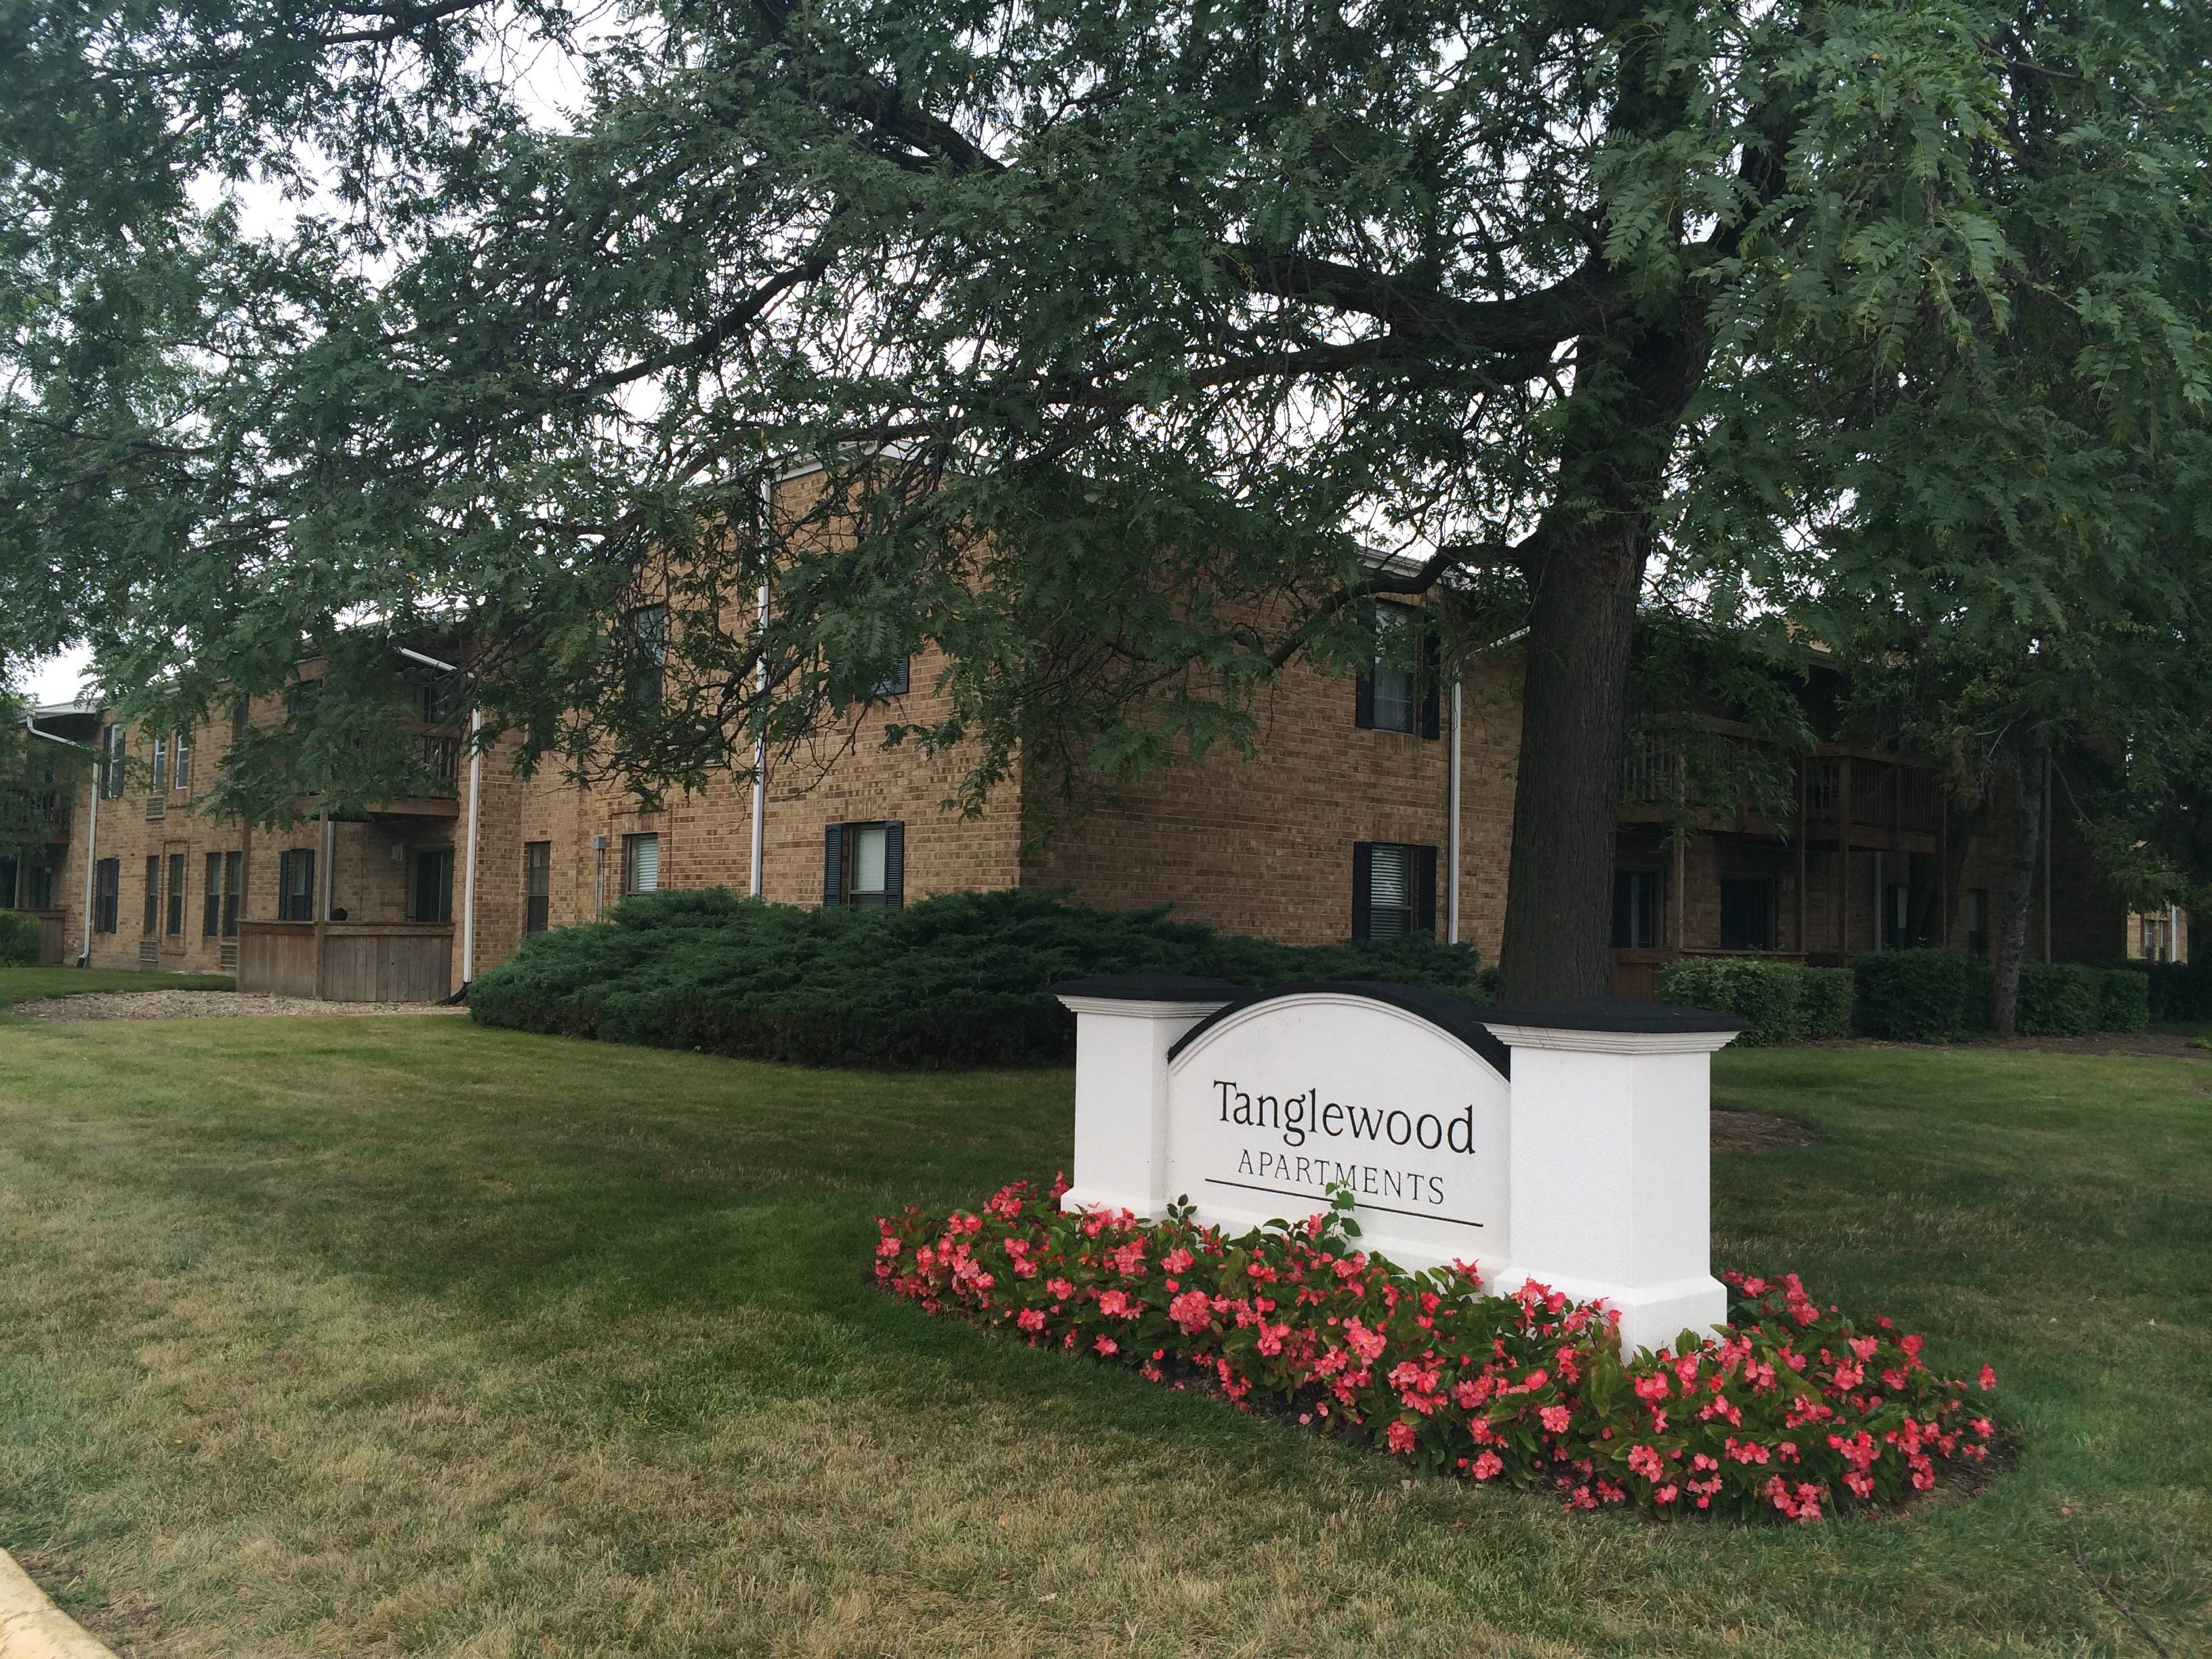 A 12-year-old girl died after being pulled Monday afternoon from a pool at the Tanglewood Apartments in Arlington Heights.